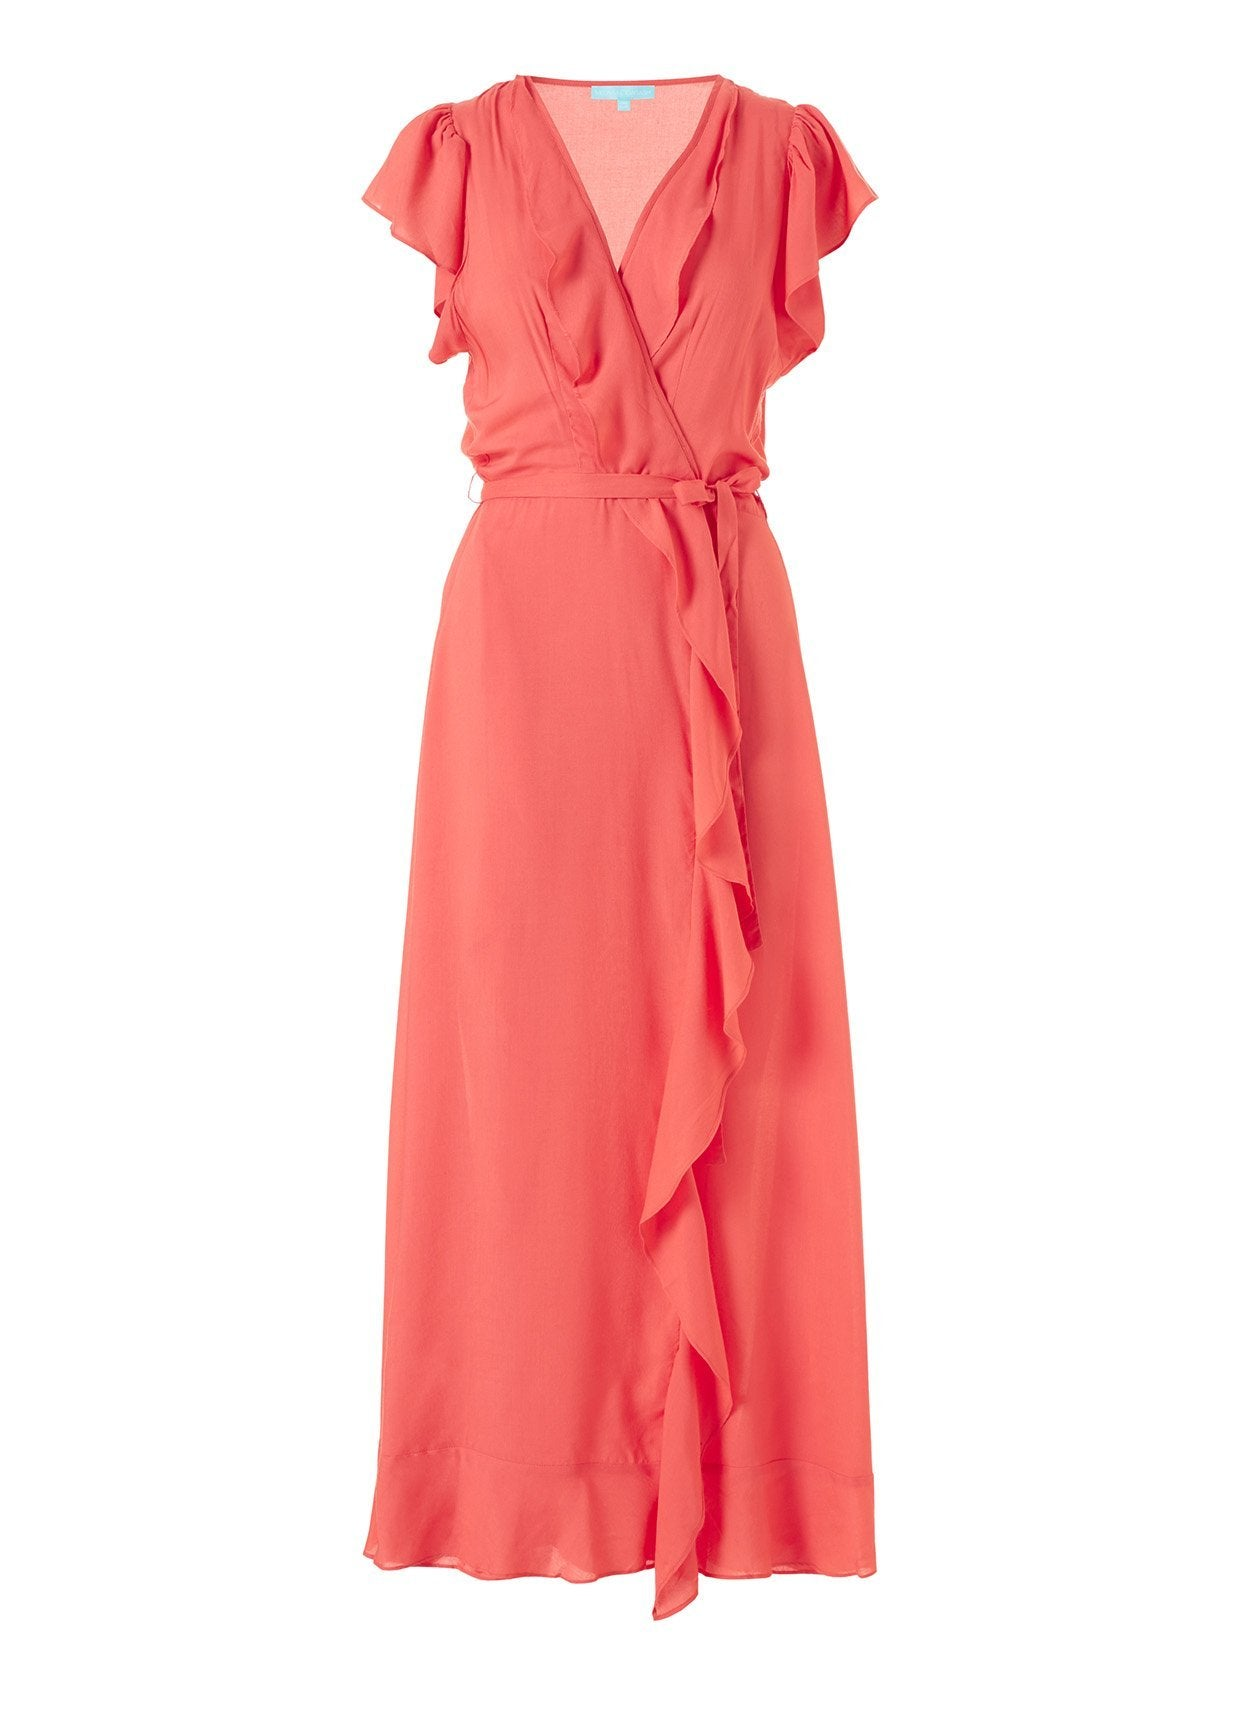 brianna tangerine long dress